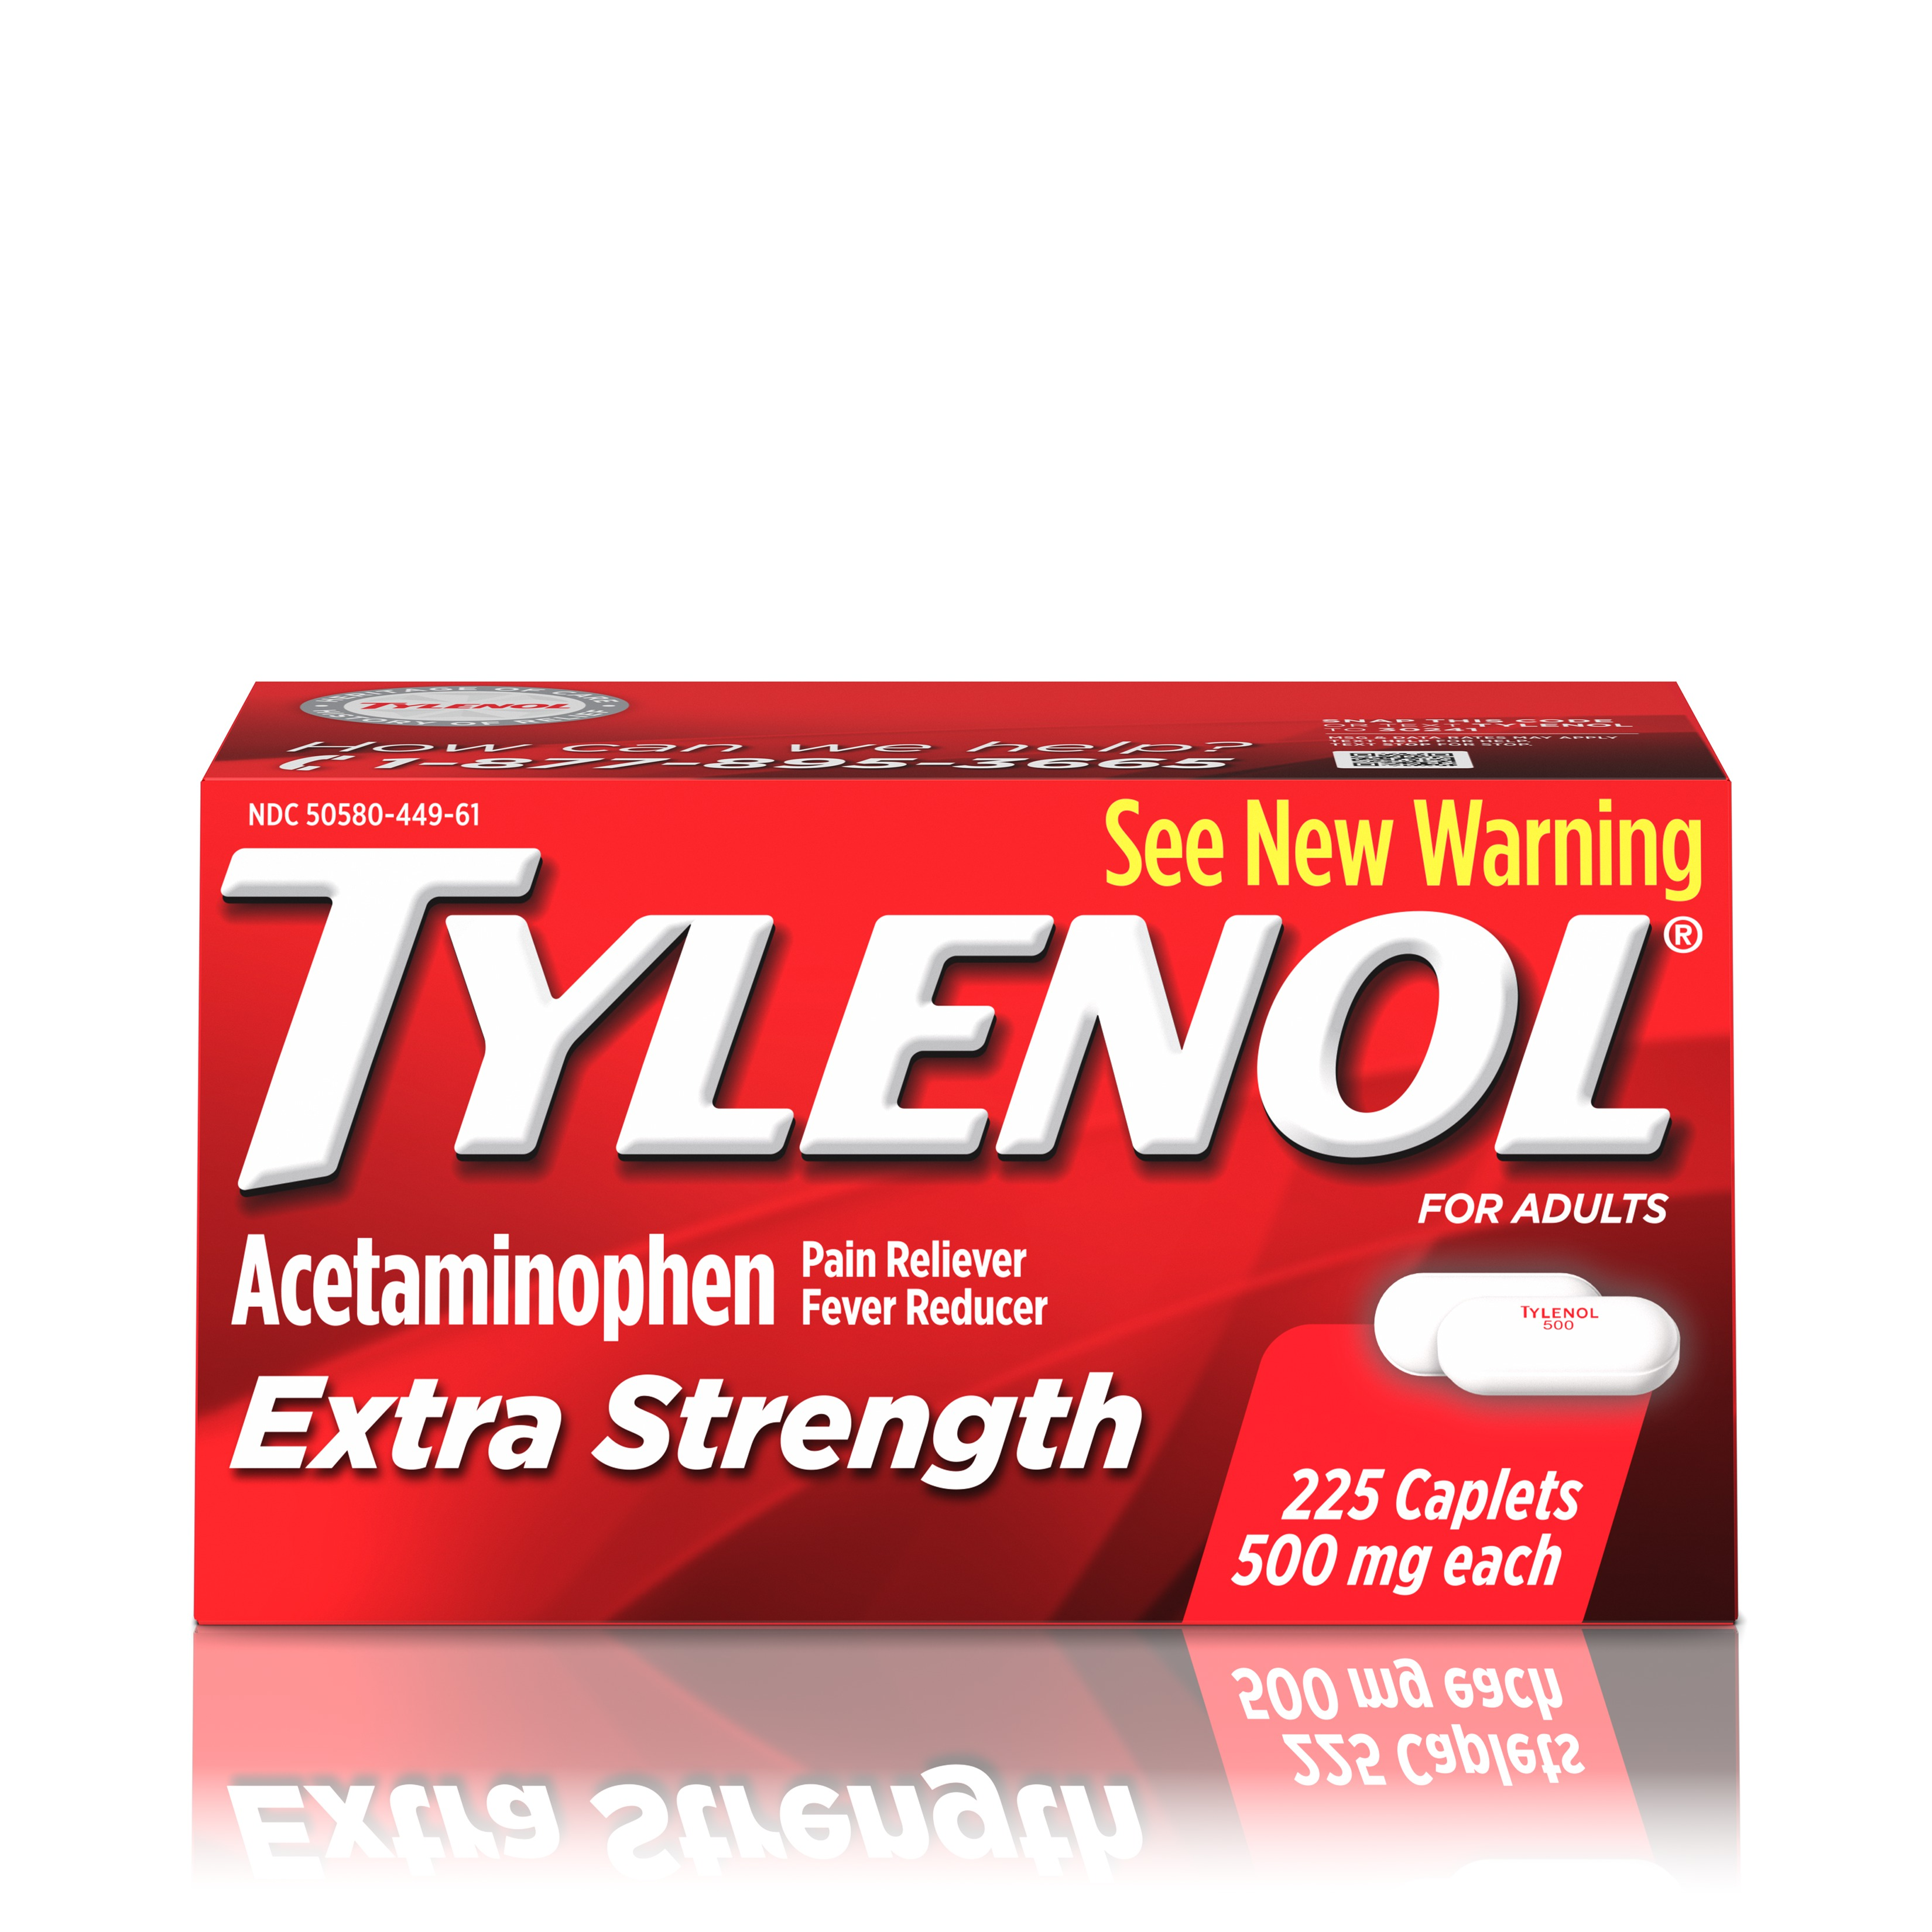 Tylenol Extra Strength Caplets, Fever Reducer and Pain Reliever, 500 mg, 225 ct.